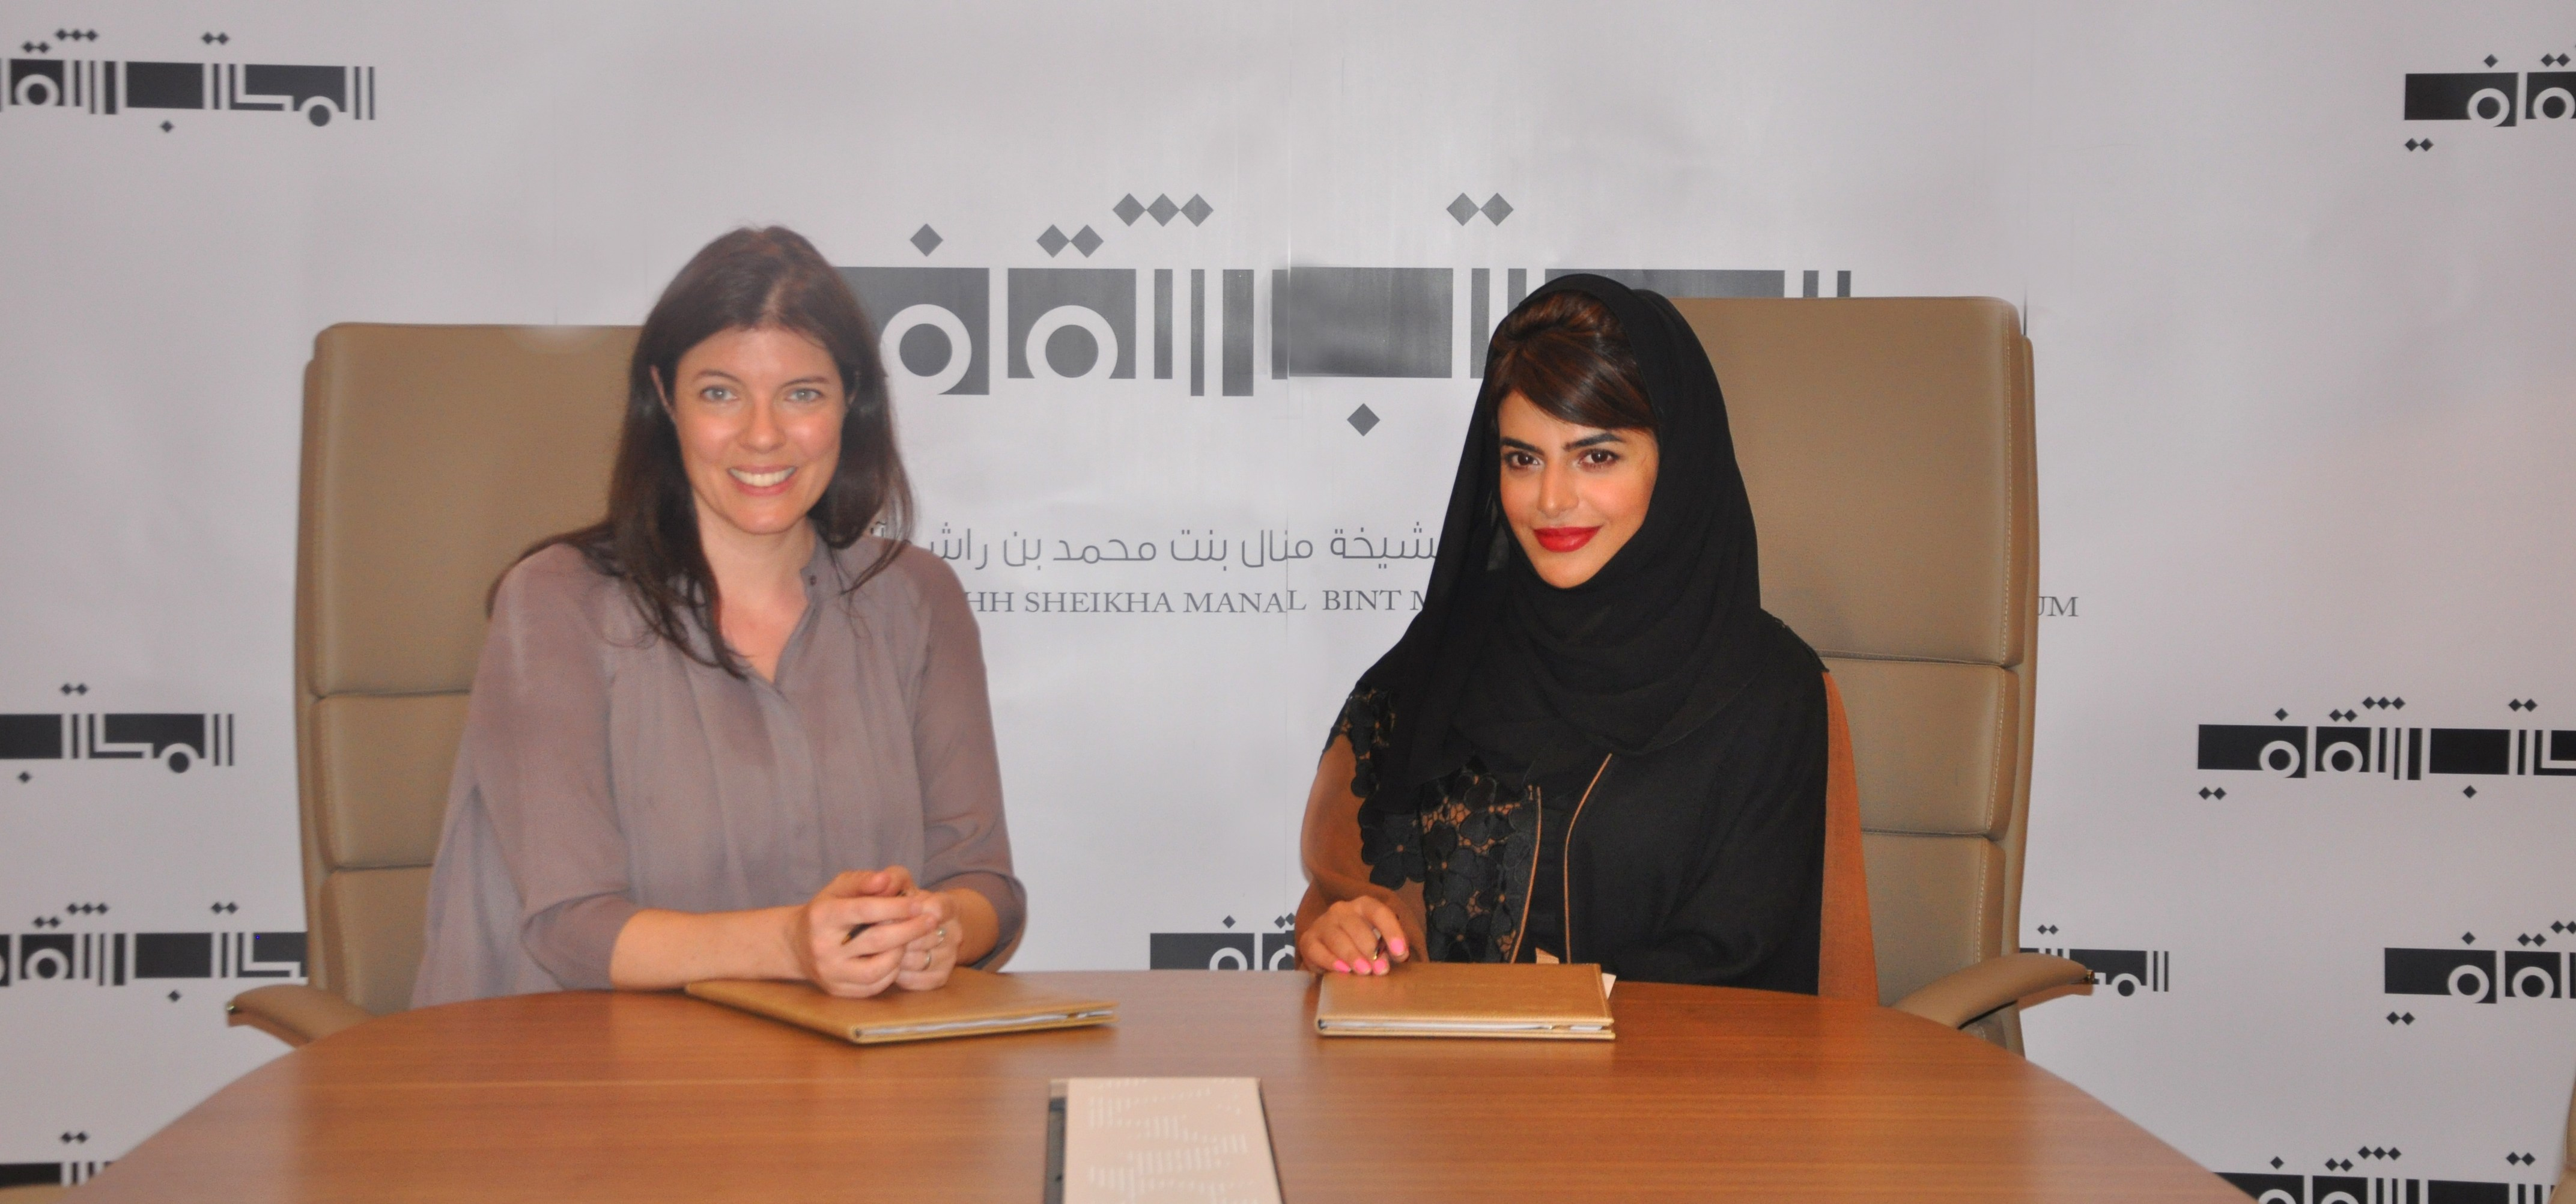 The Cultural Offices and Art Dubai strengthen their cooperation through new Memorandum of Understanding